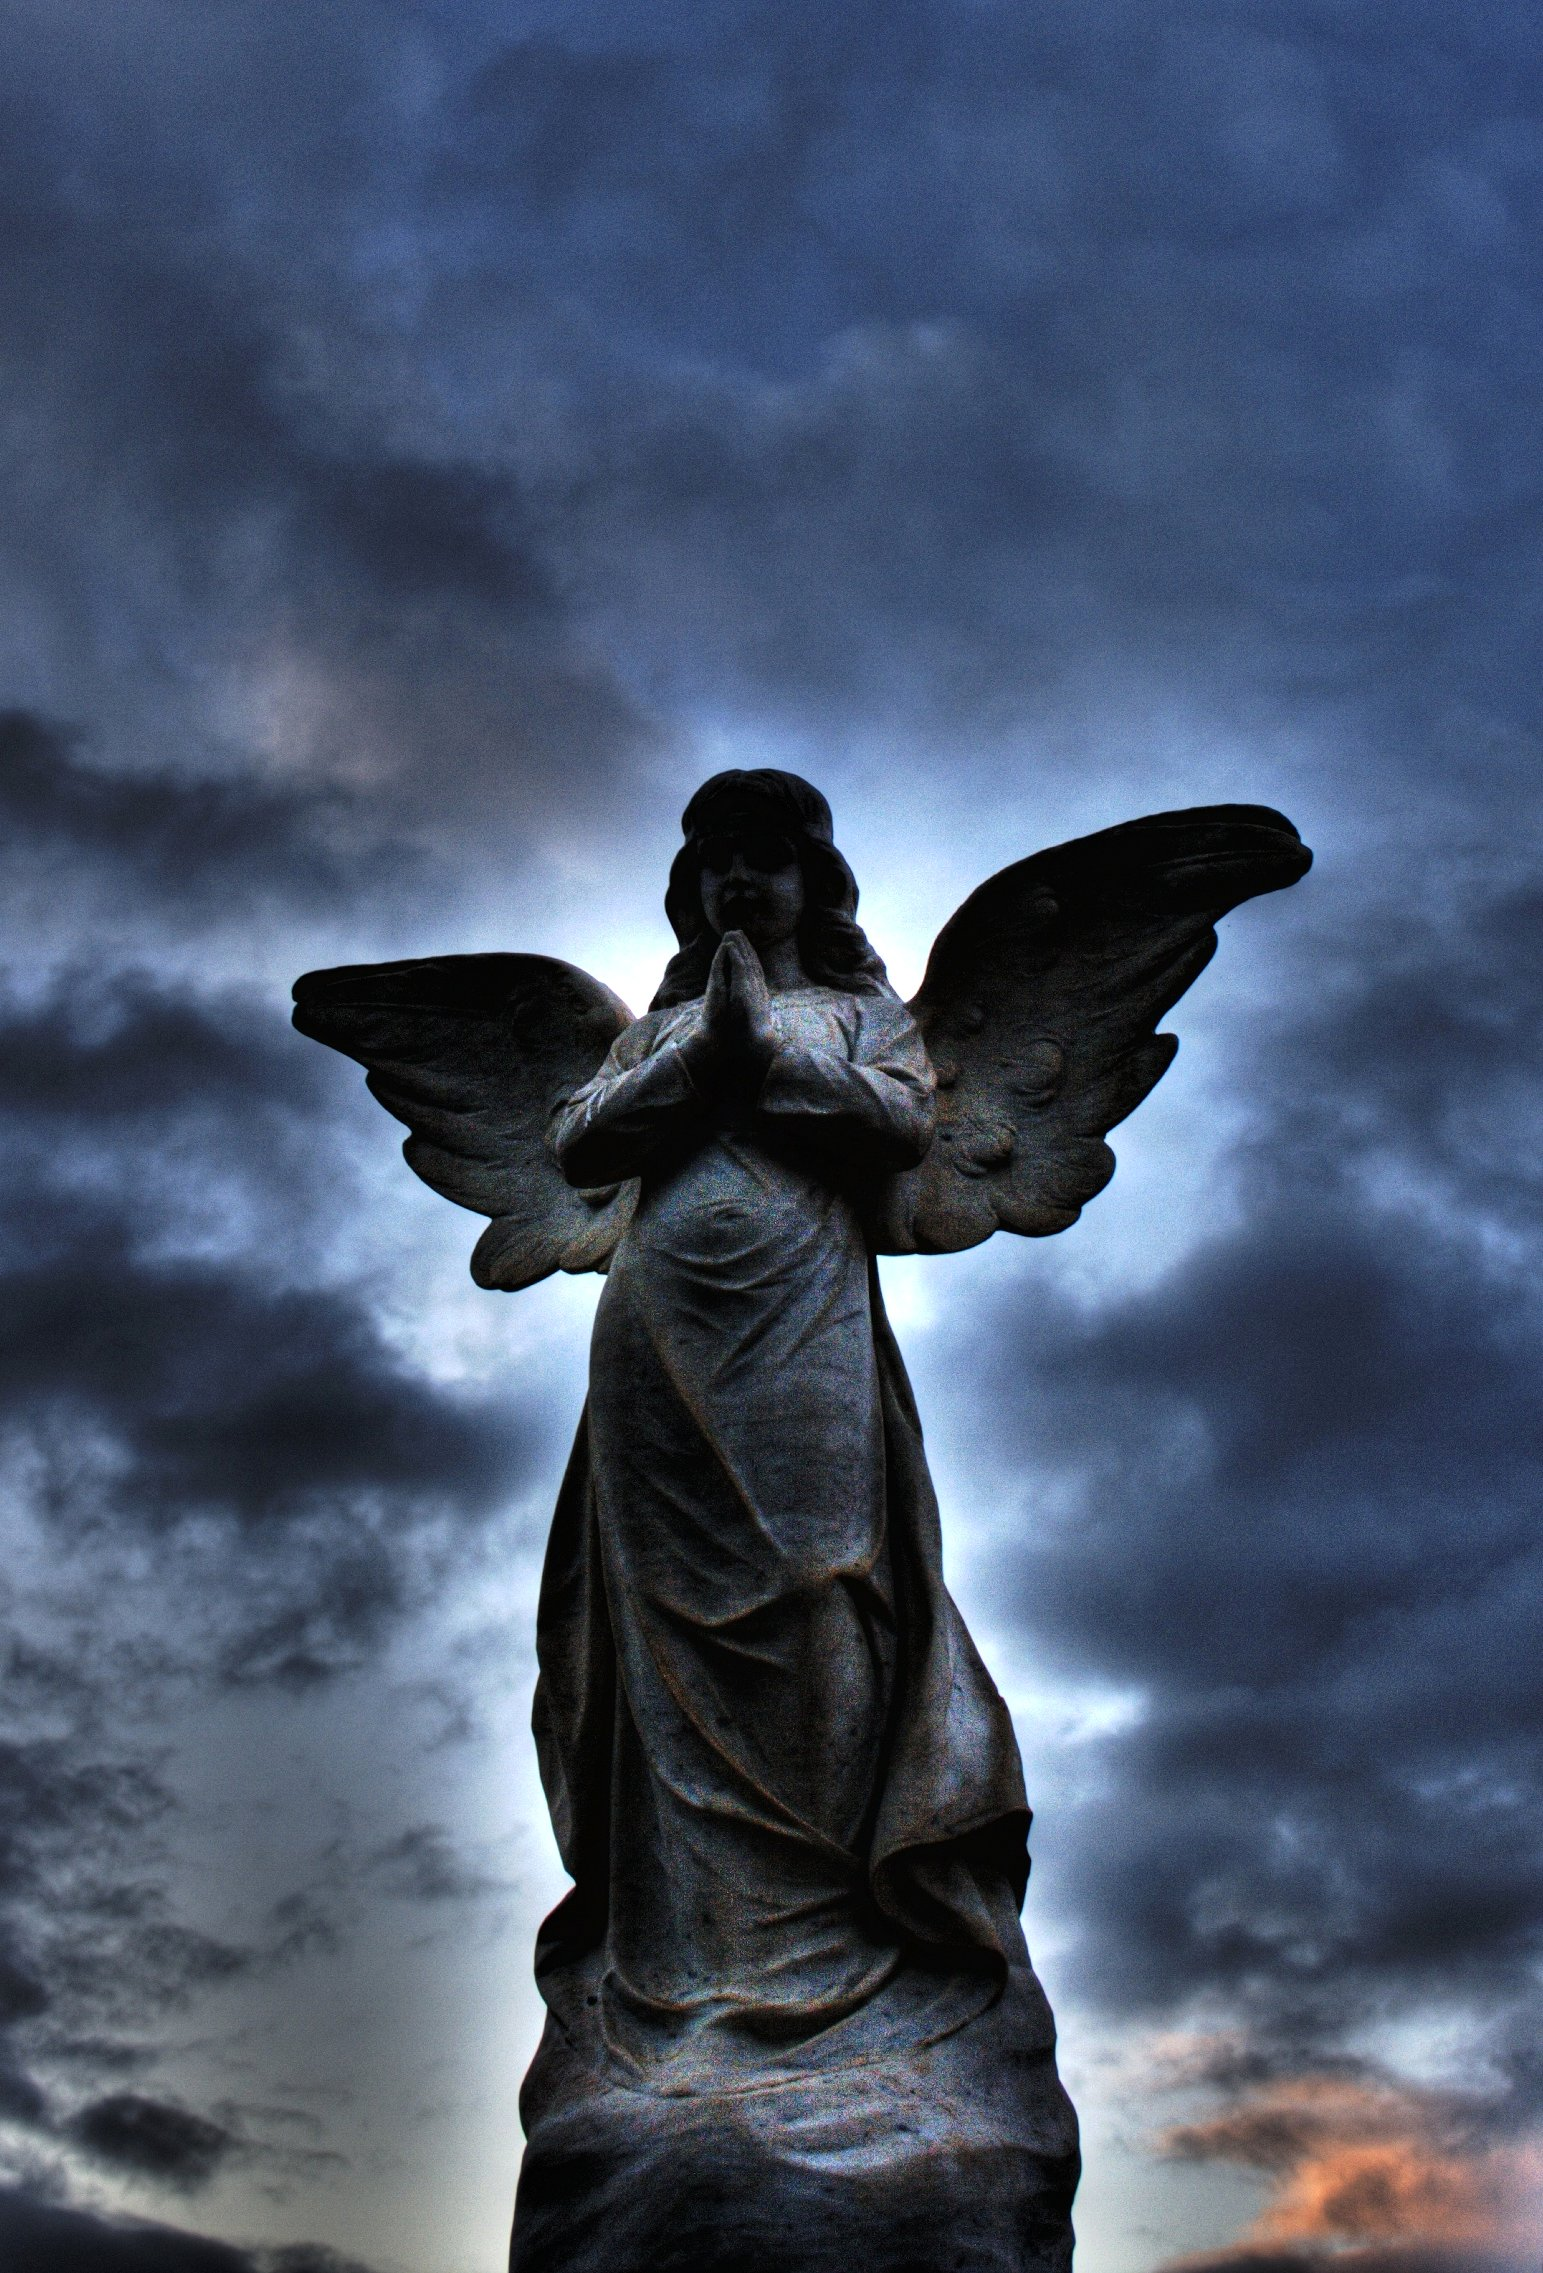 Http Commons Wikimedia Org Wiki File Cemetery Angel 002 Hdr Jpg